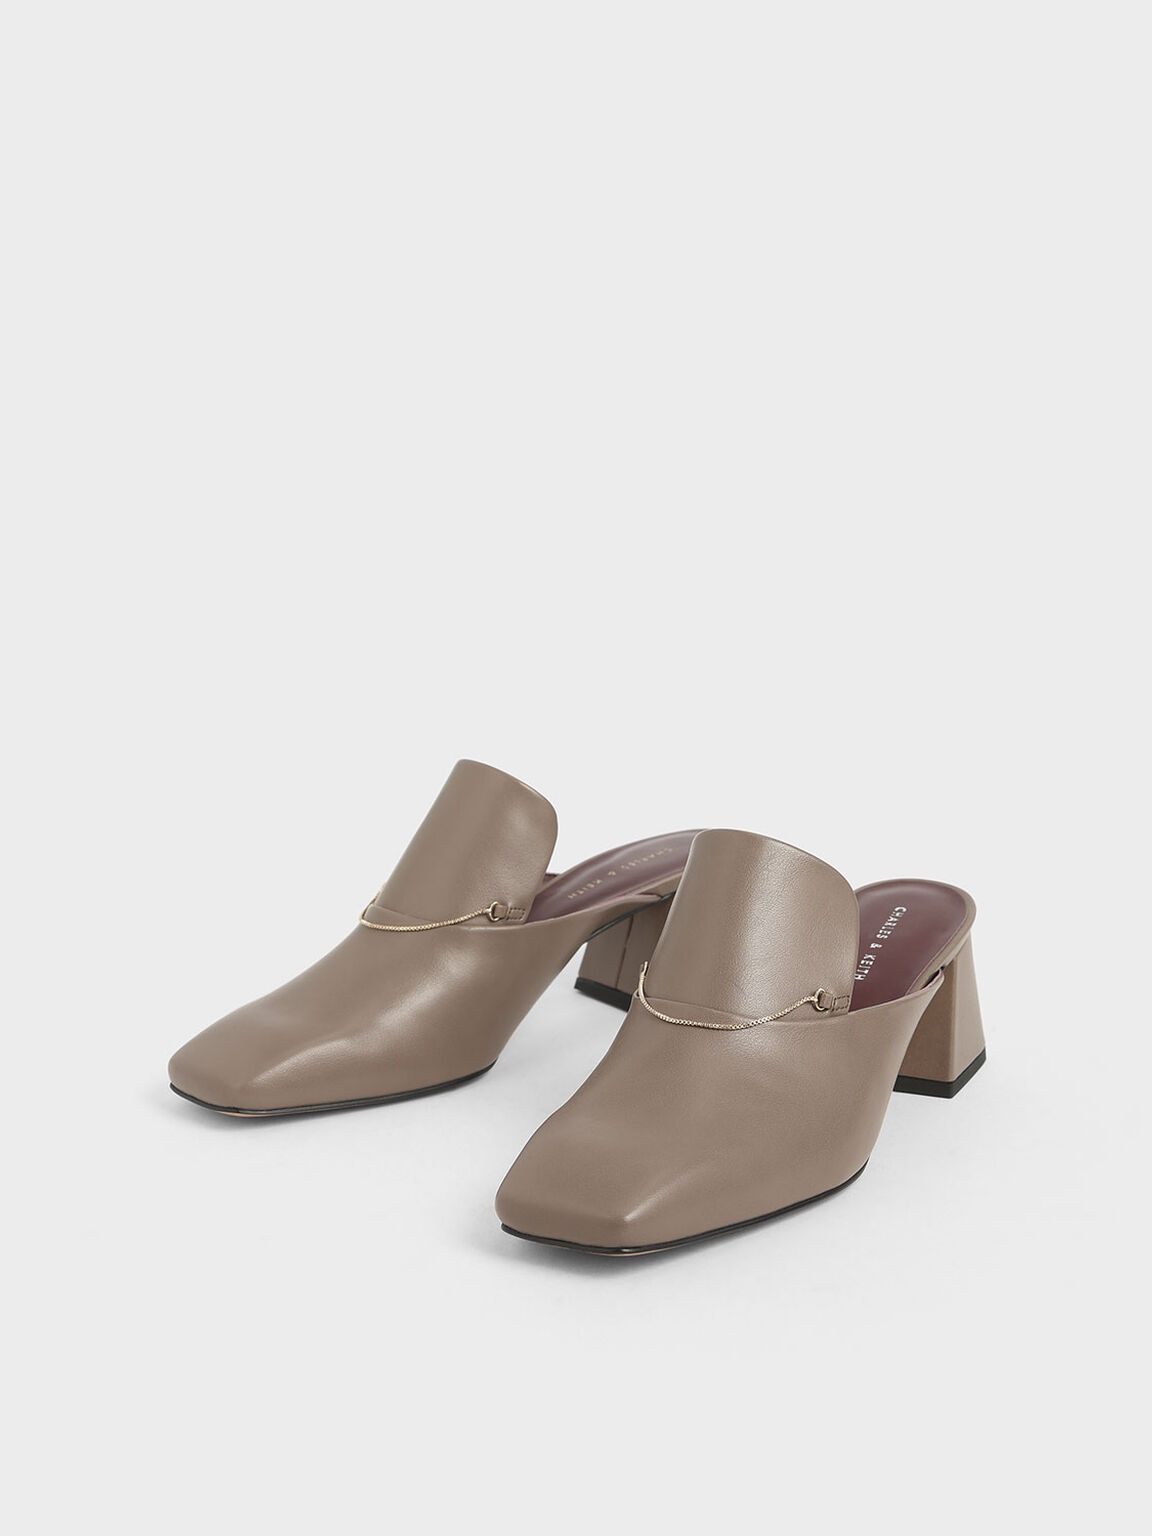 Chain Link Loafer Mules, Taupe, hi-res